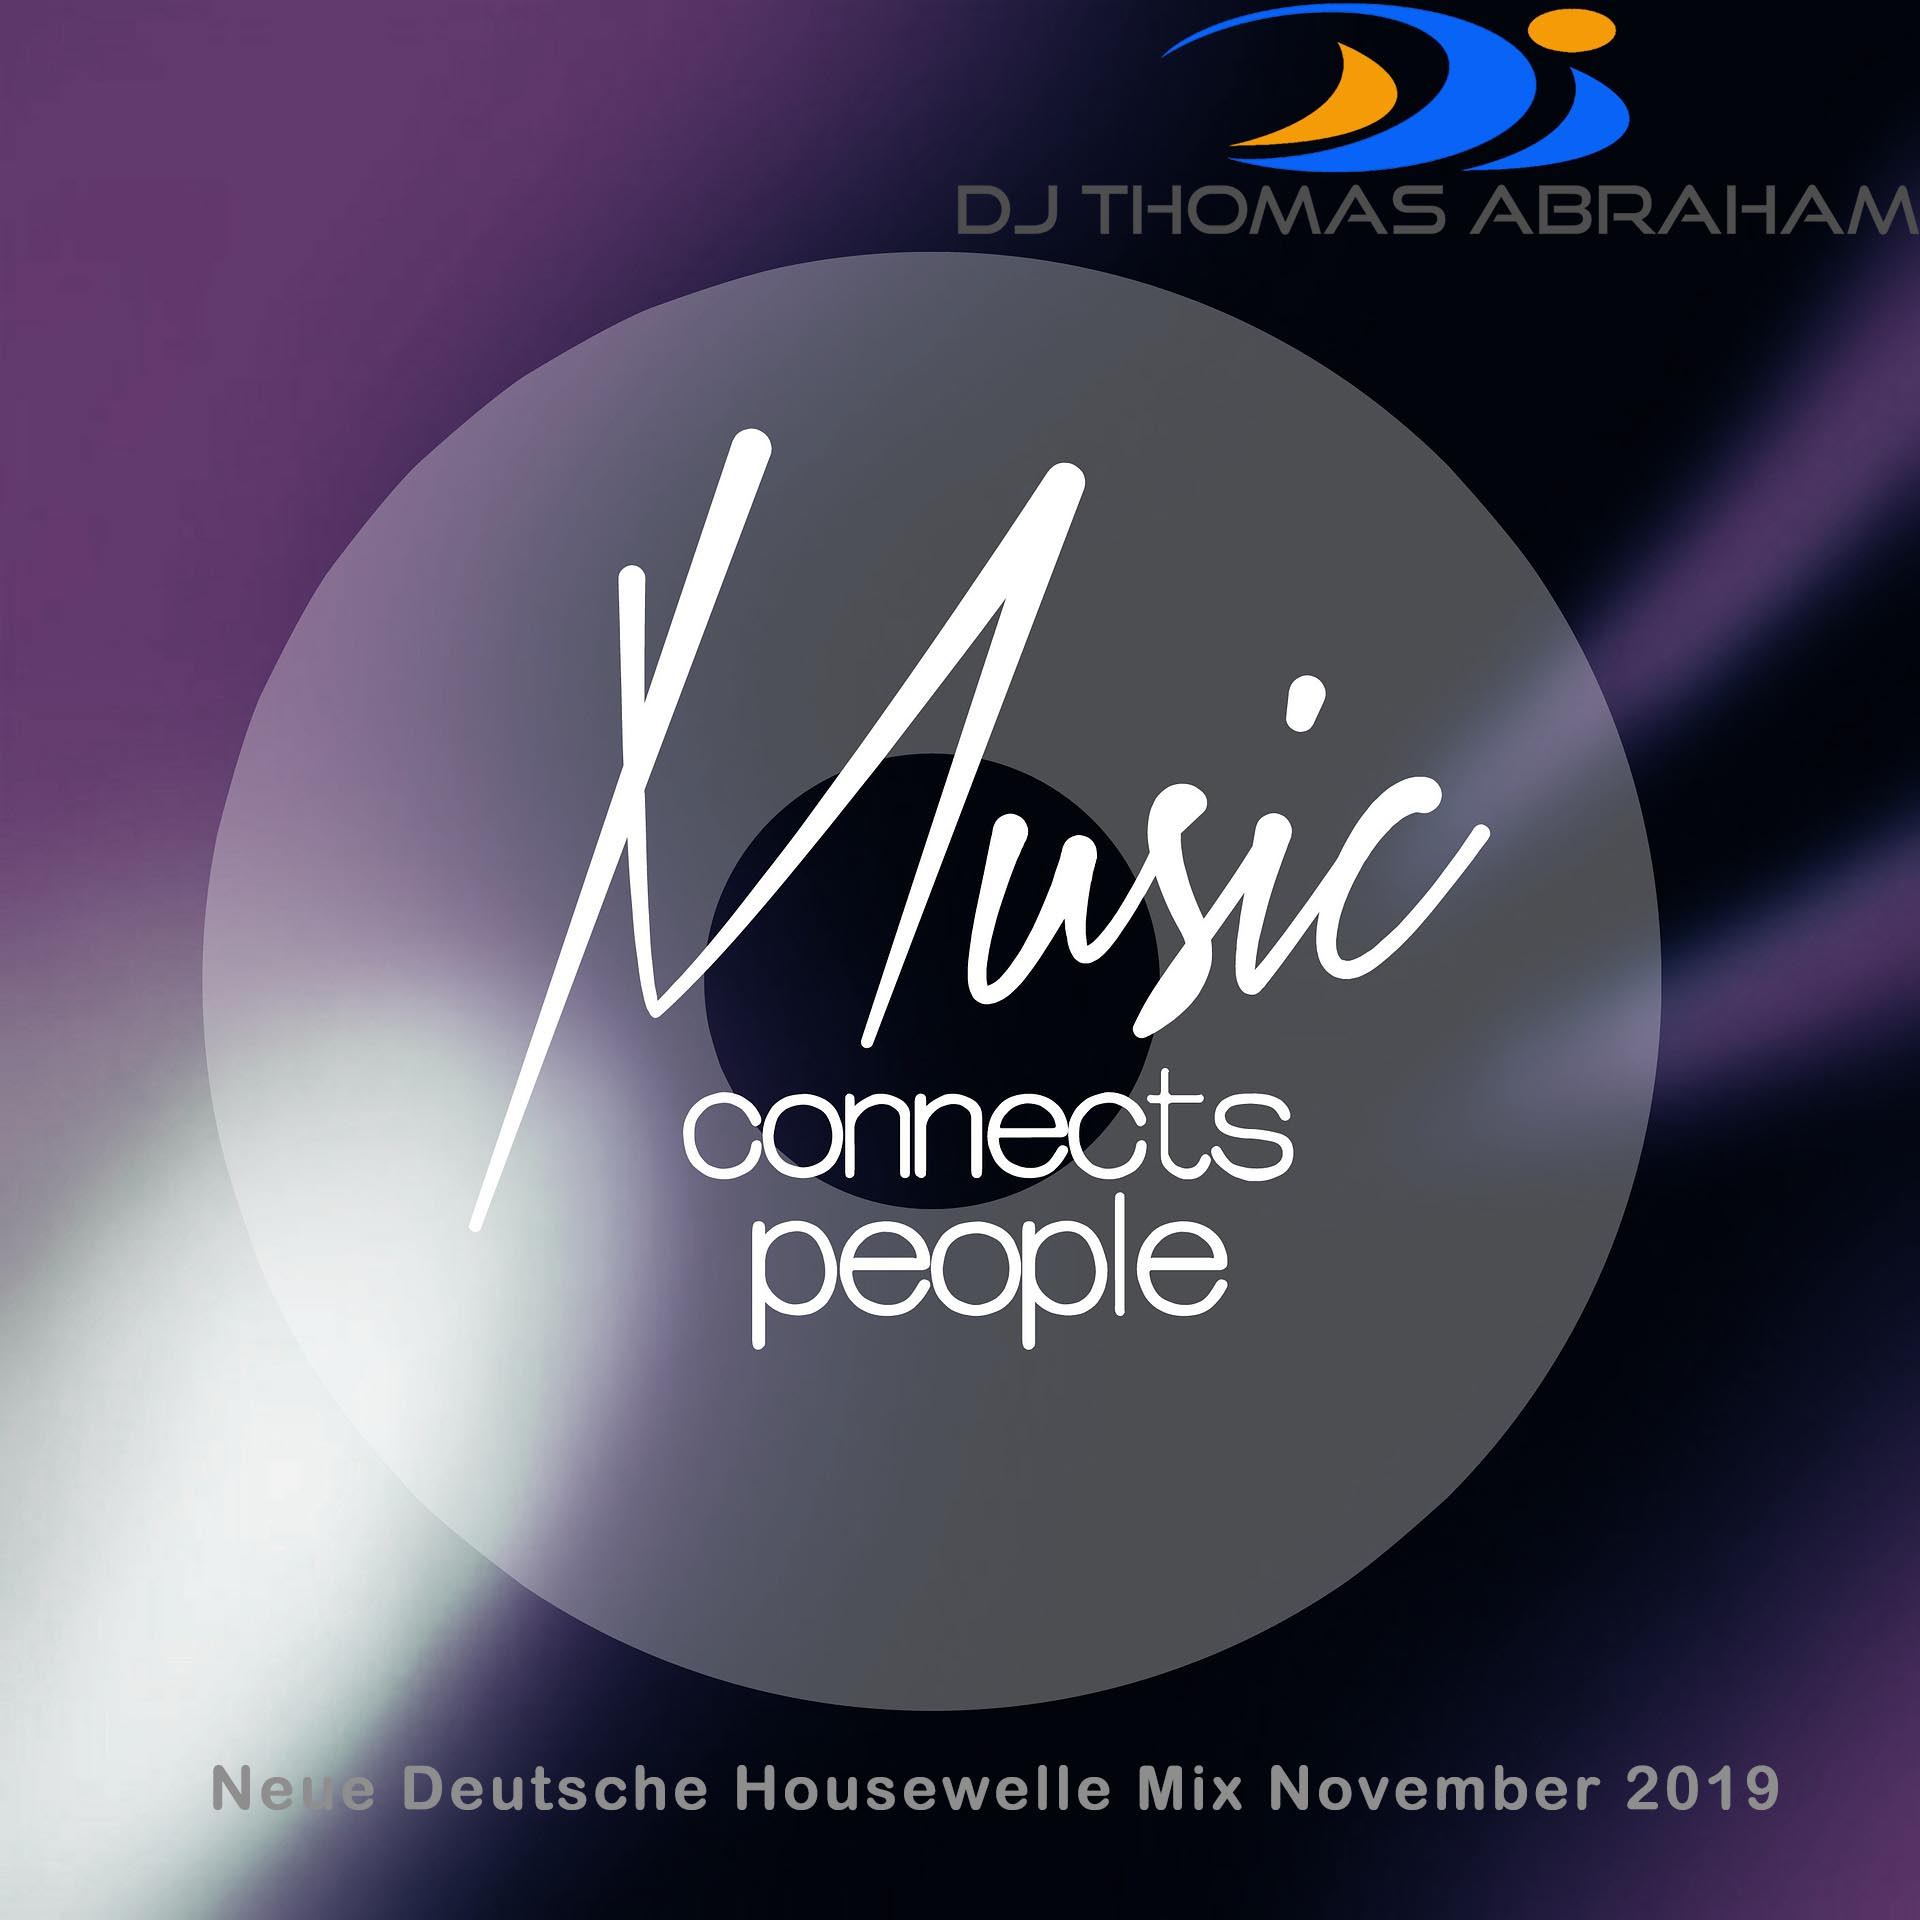 Neue Deutsche Housewelle Mix November 2019